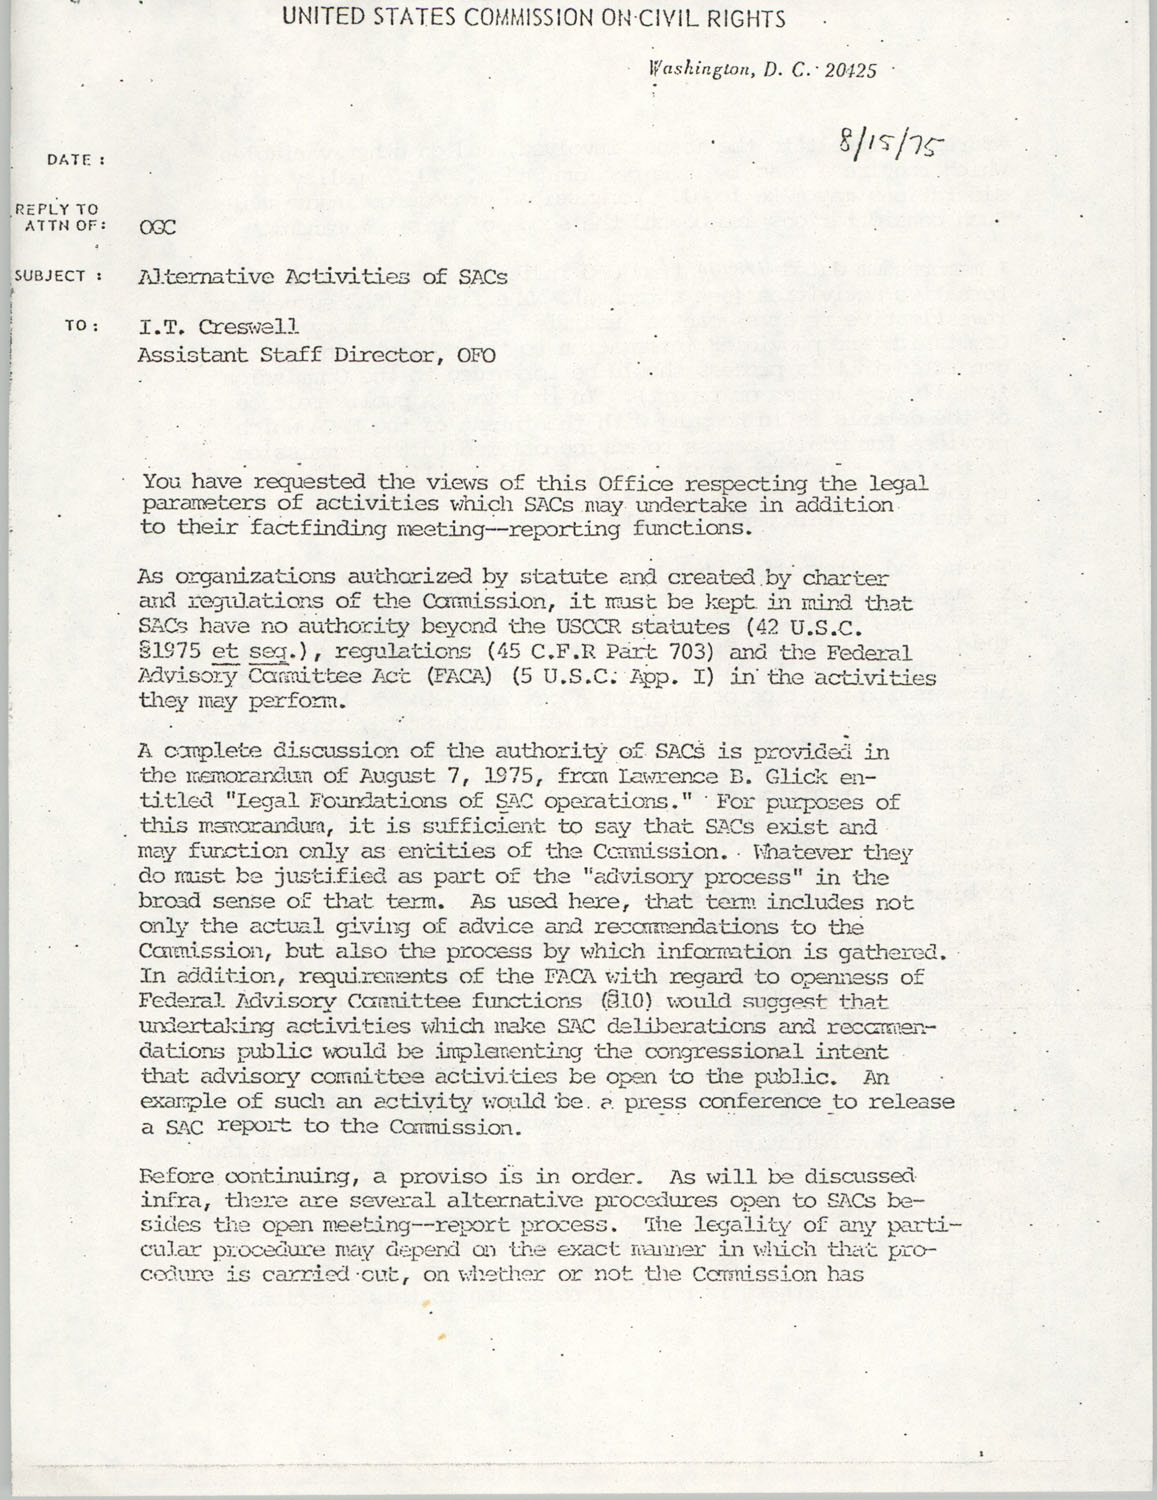 Memorandum from Lawrence B. Glick to I. T. Creswell, August, 15, 1975